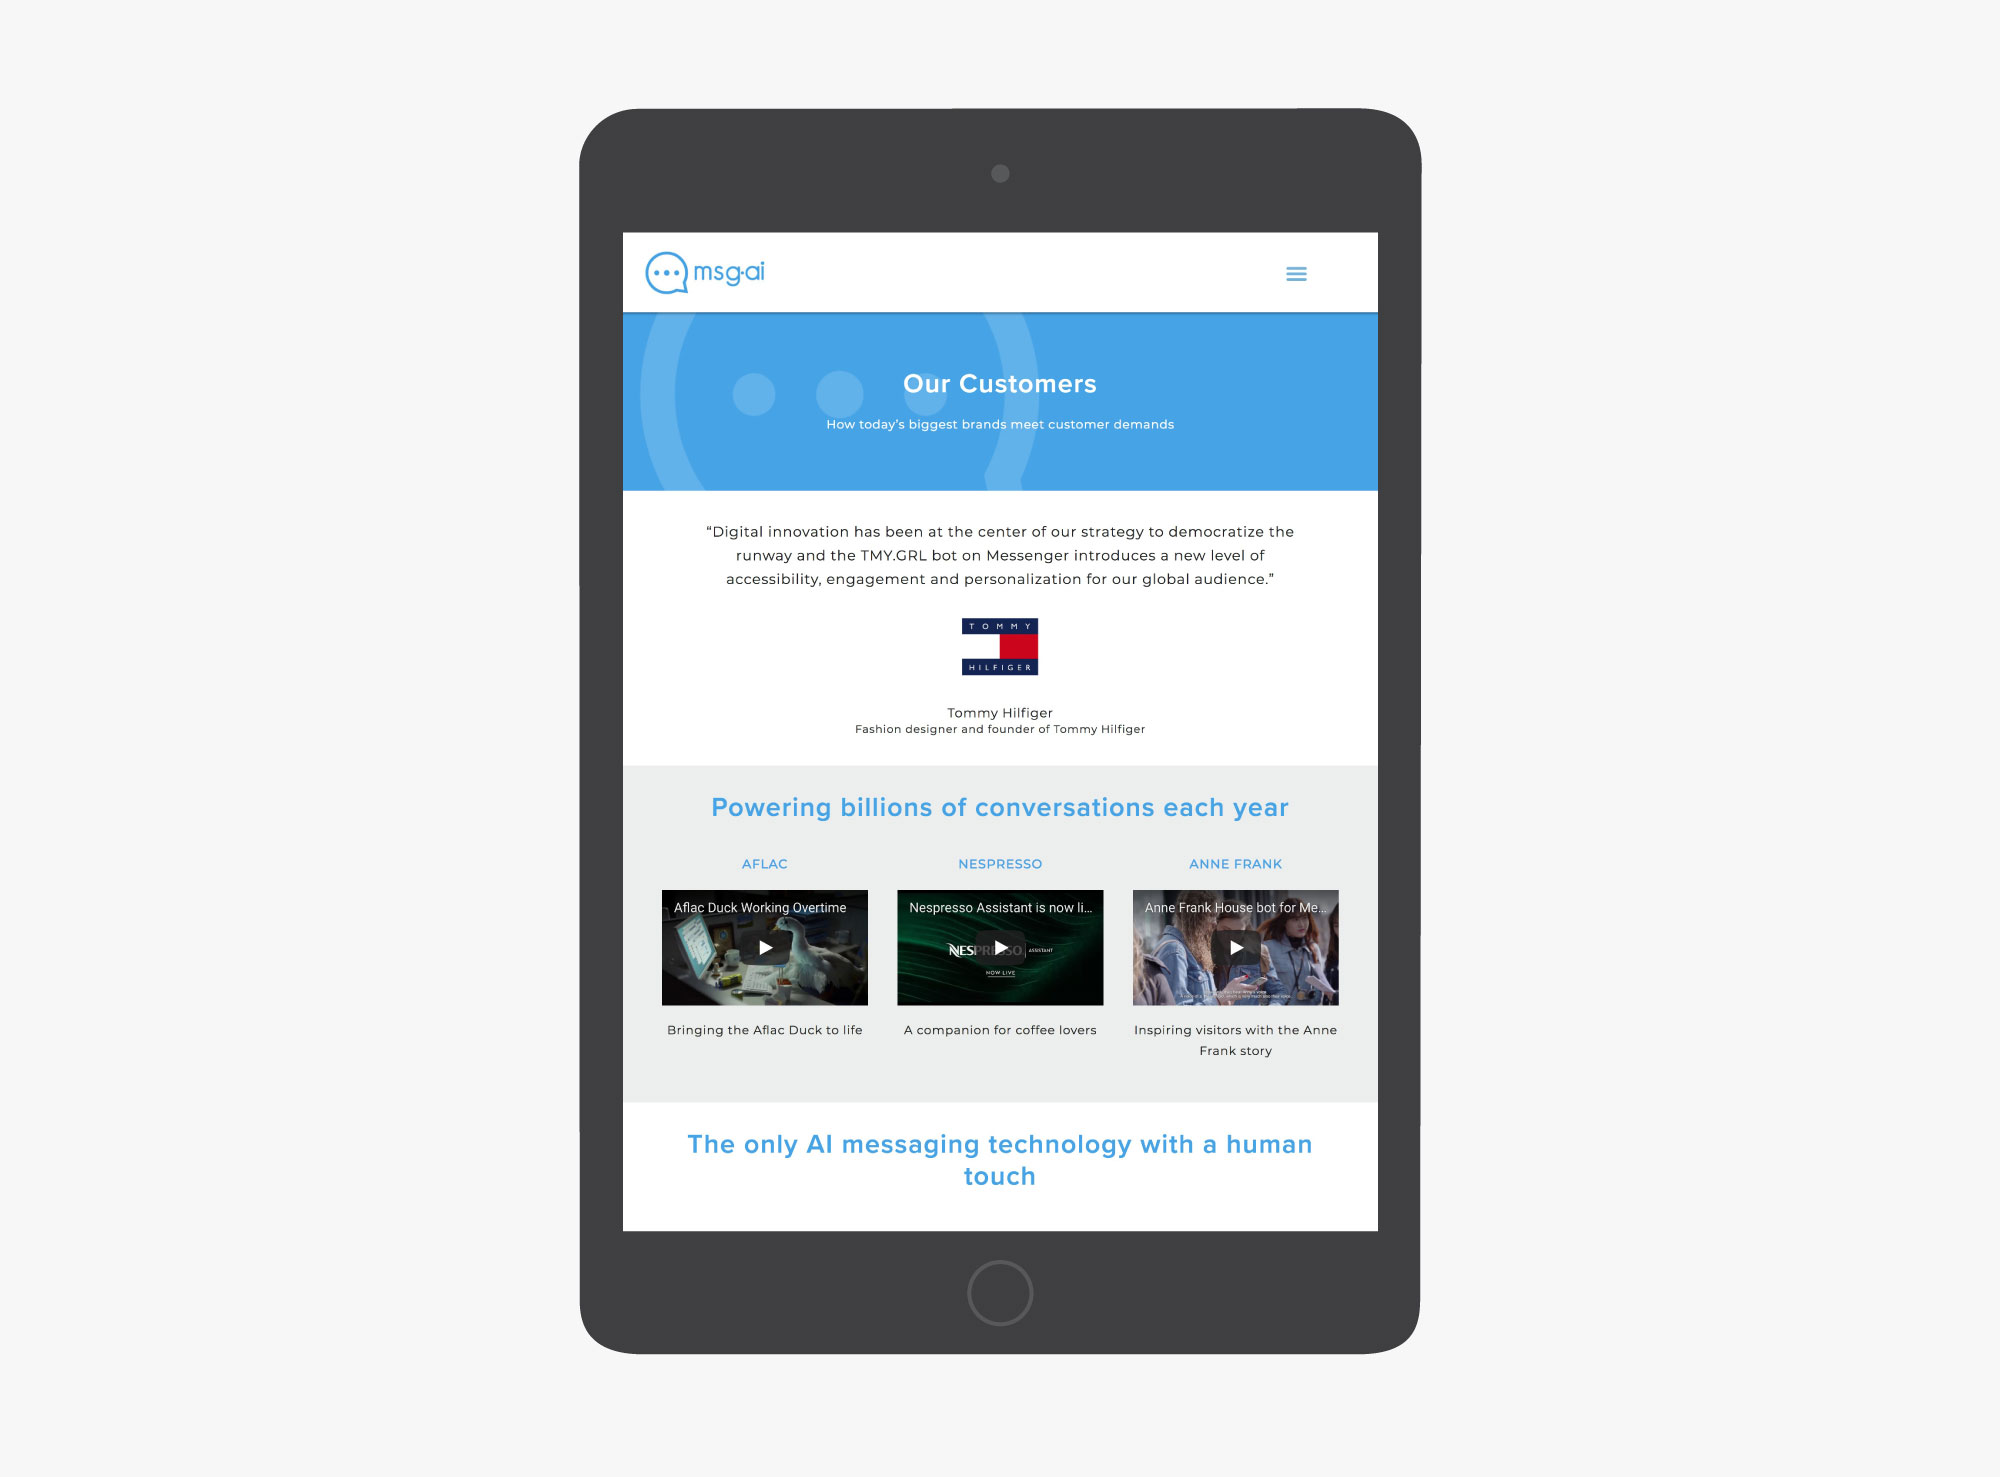 giant is msg ai website samples tablet